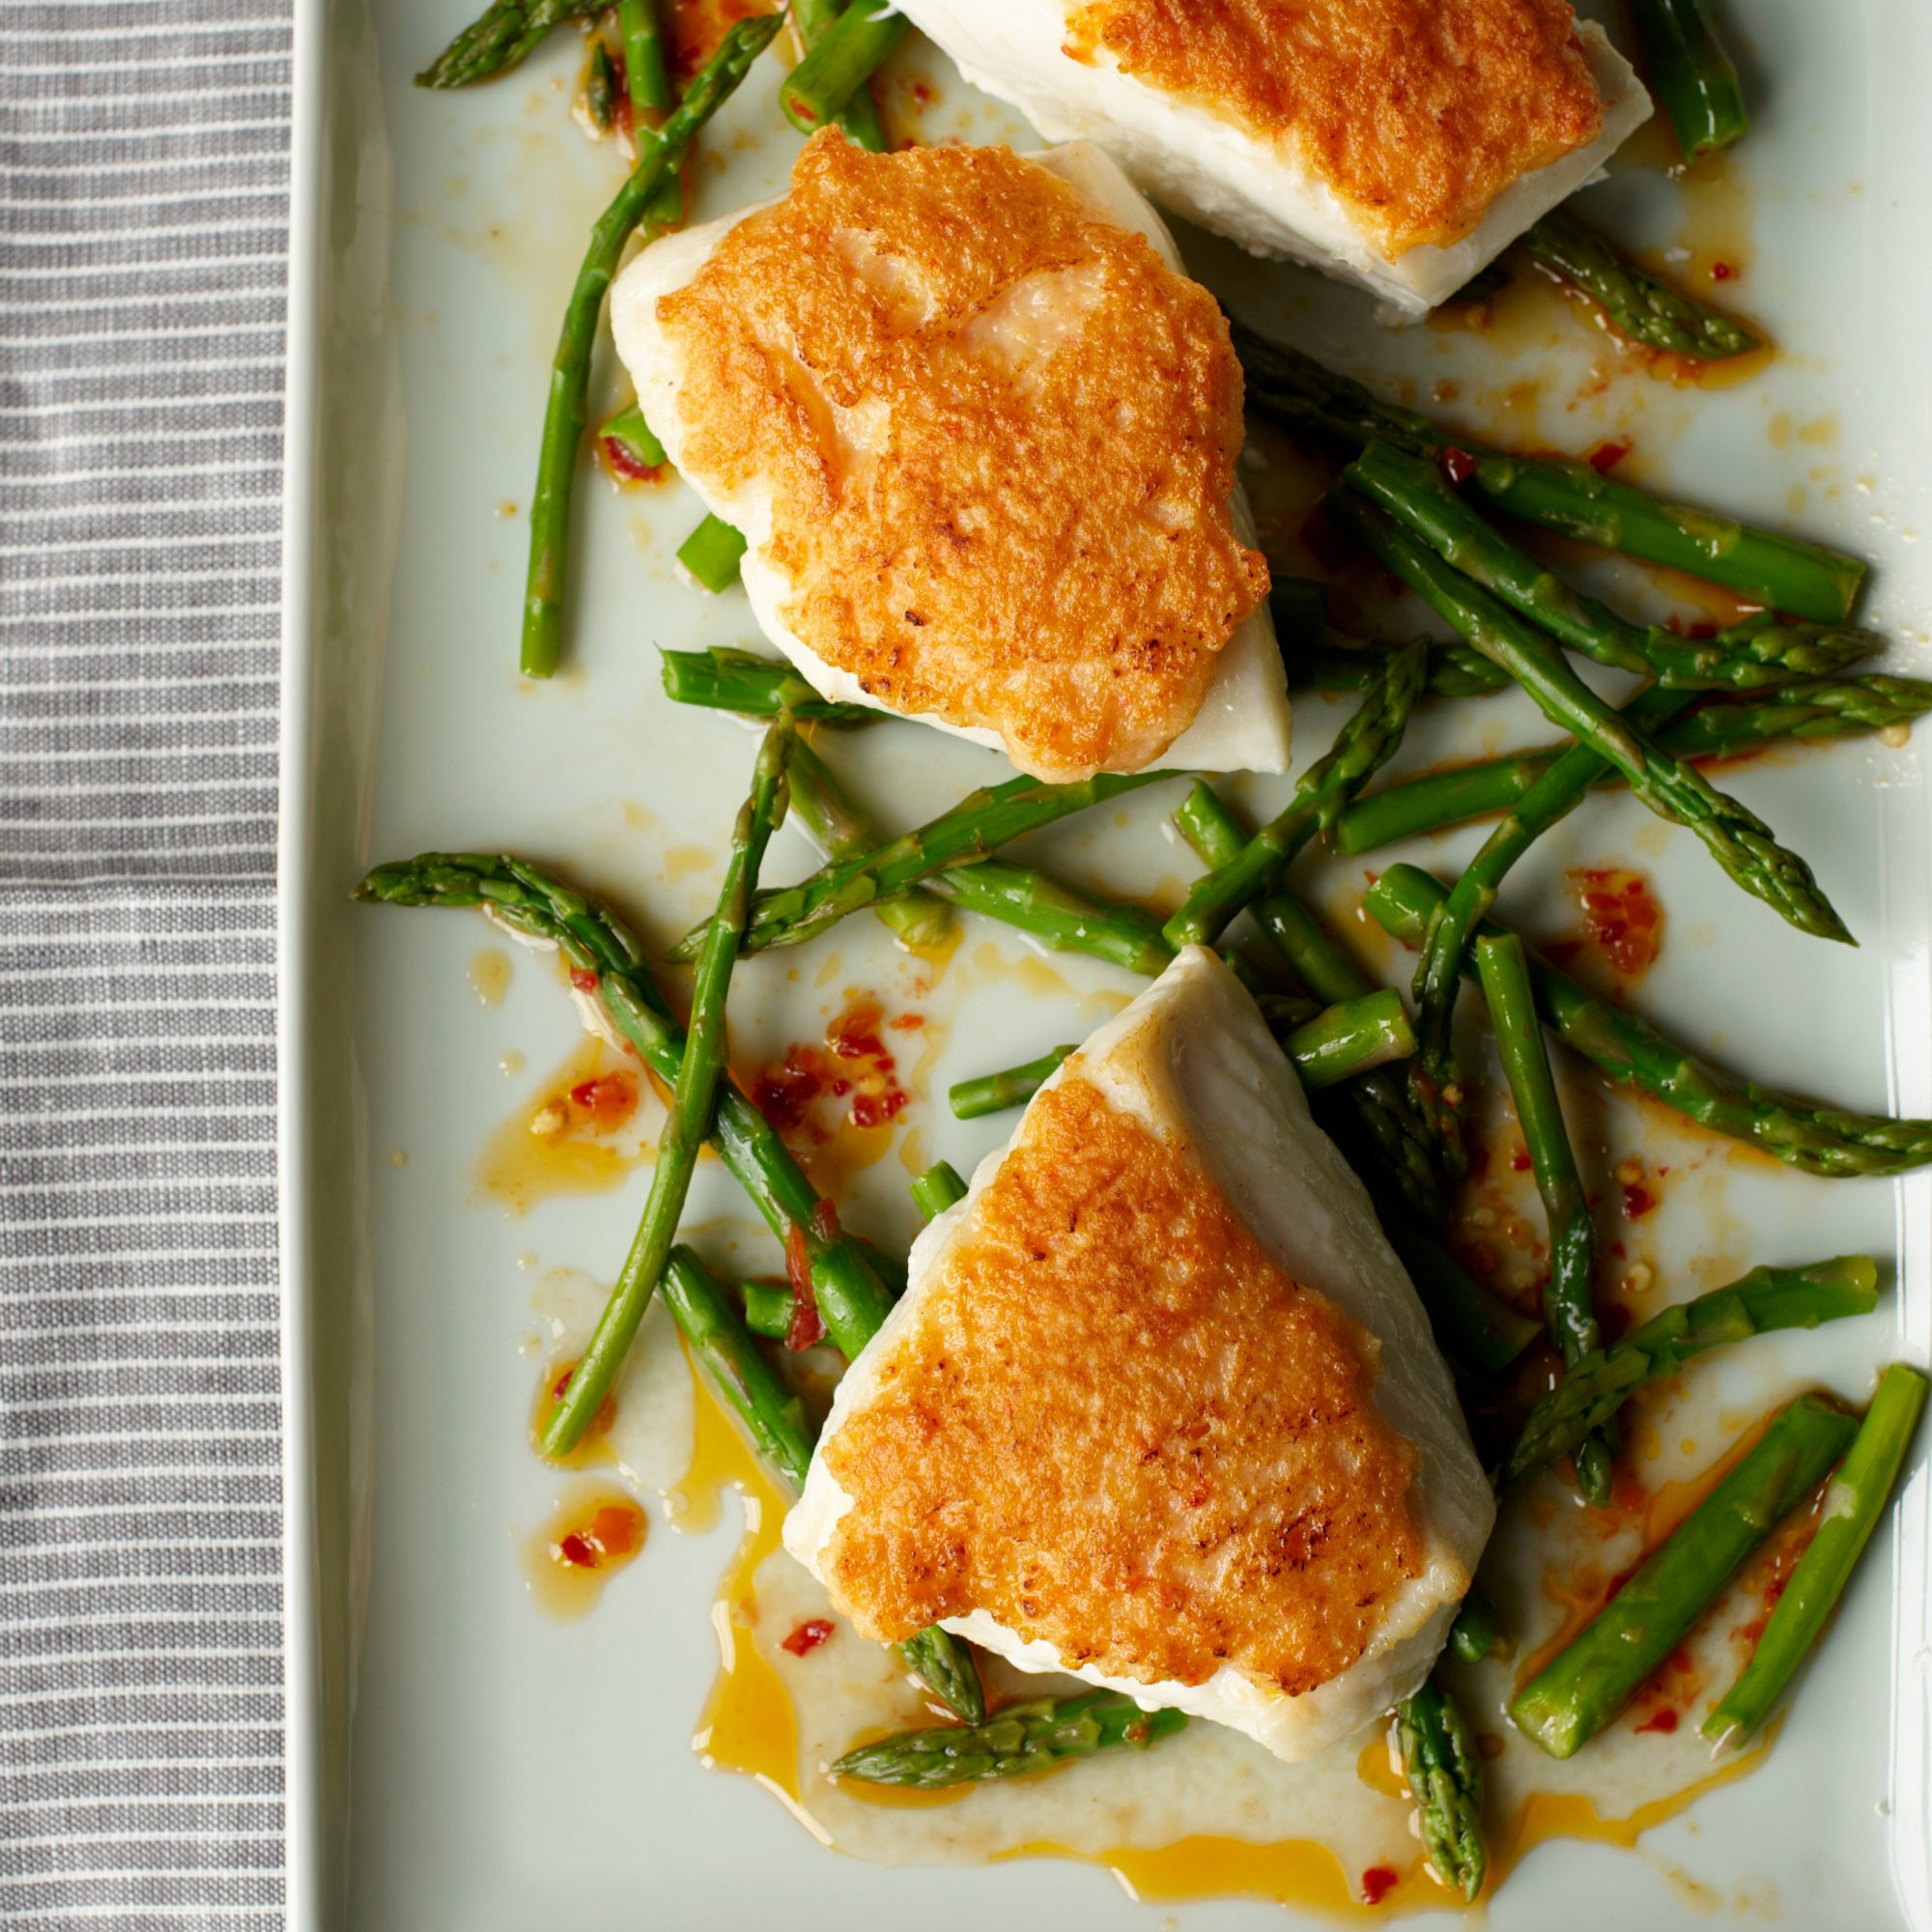 Shrimp Crusted Halibut with Spicy Asparagus Salad